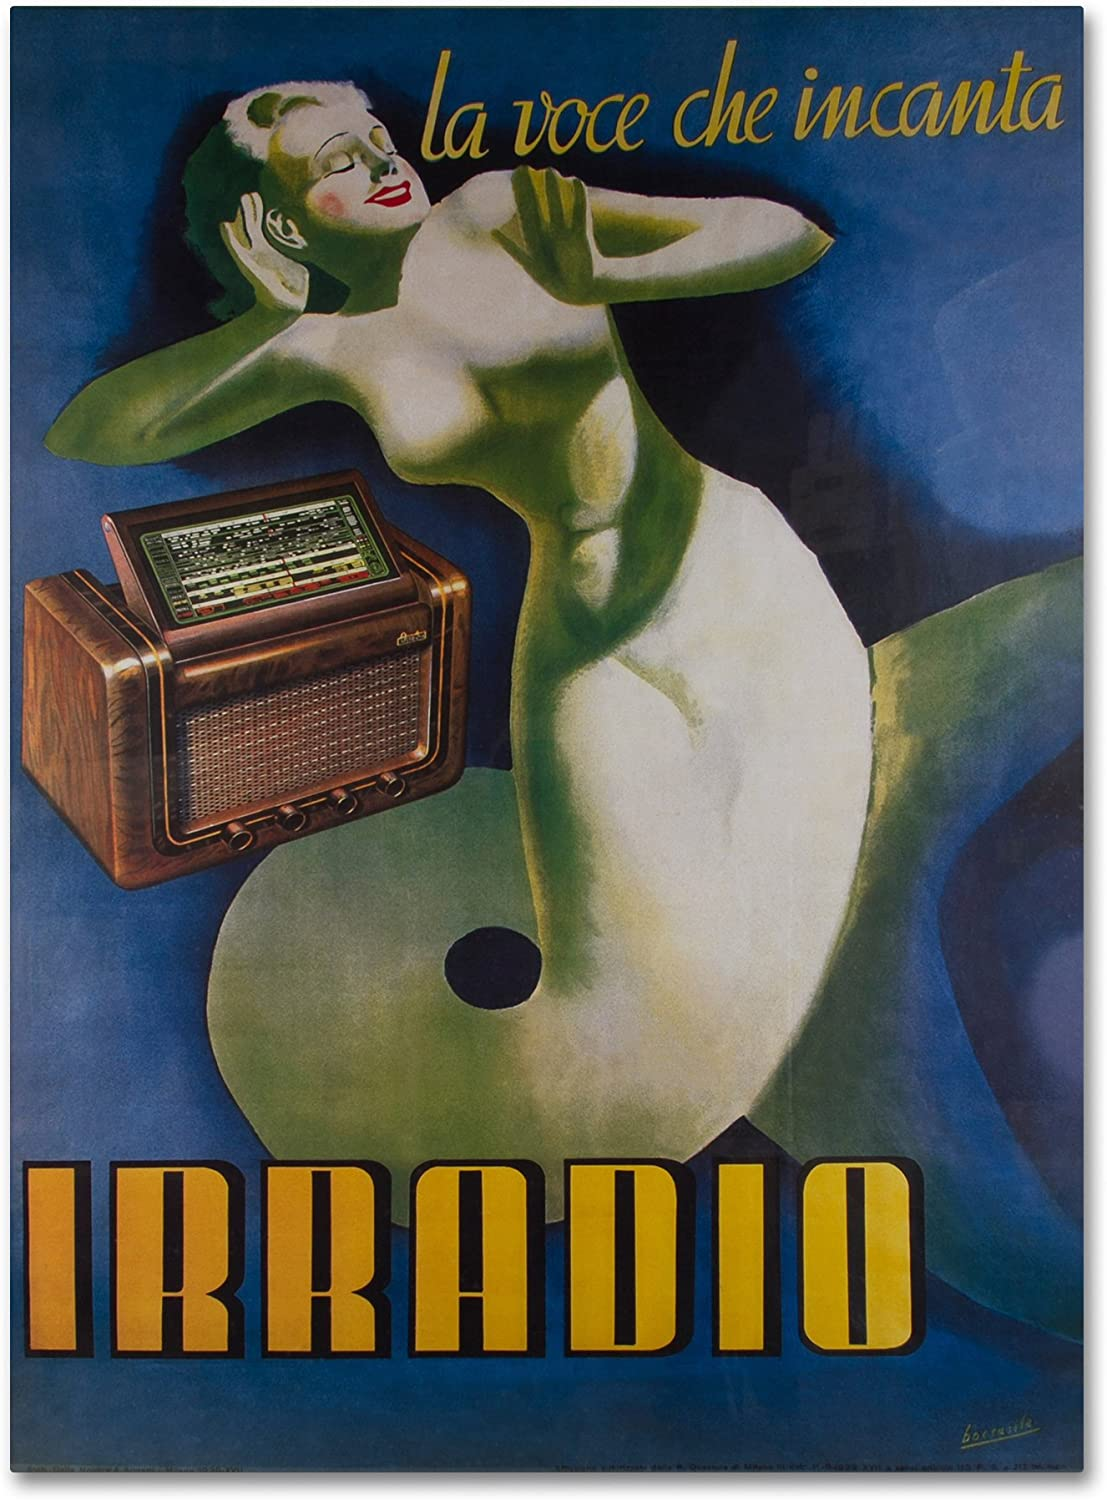 Irradio by Vintage Apple Collection, 14x19Inch